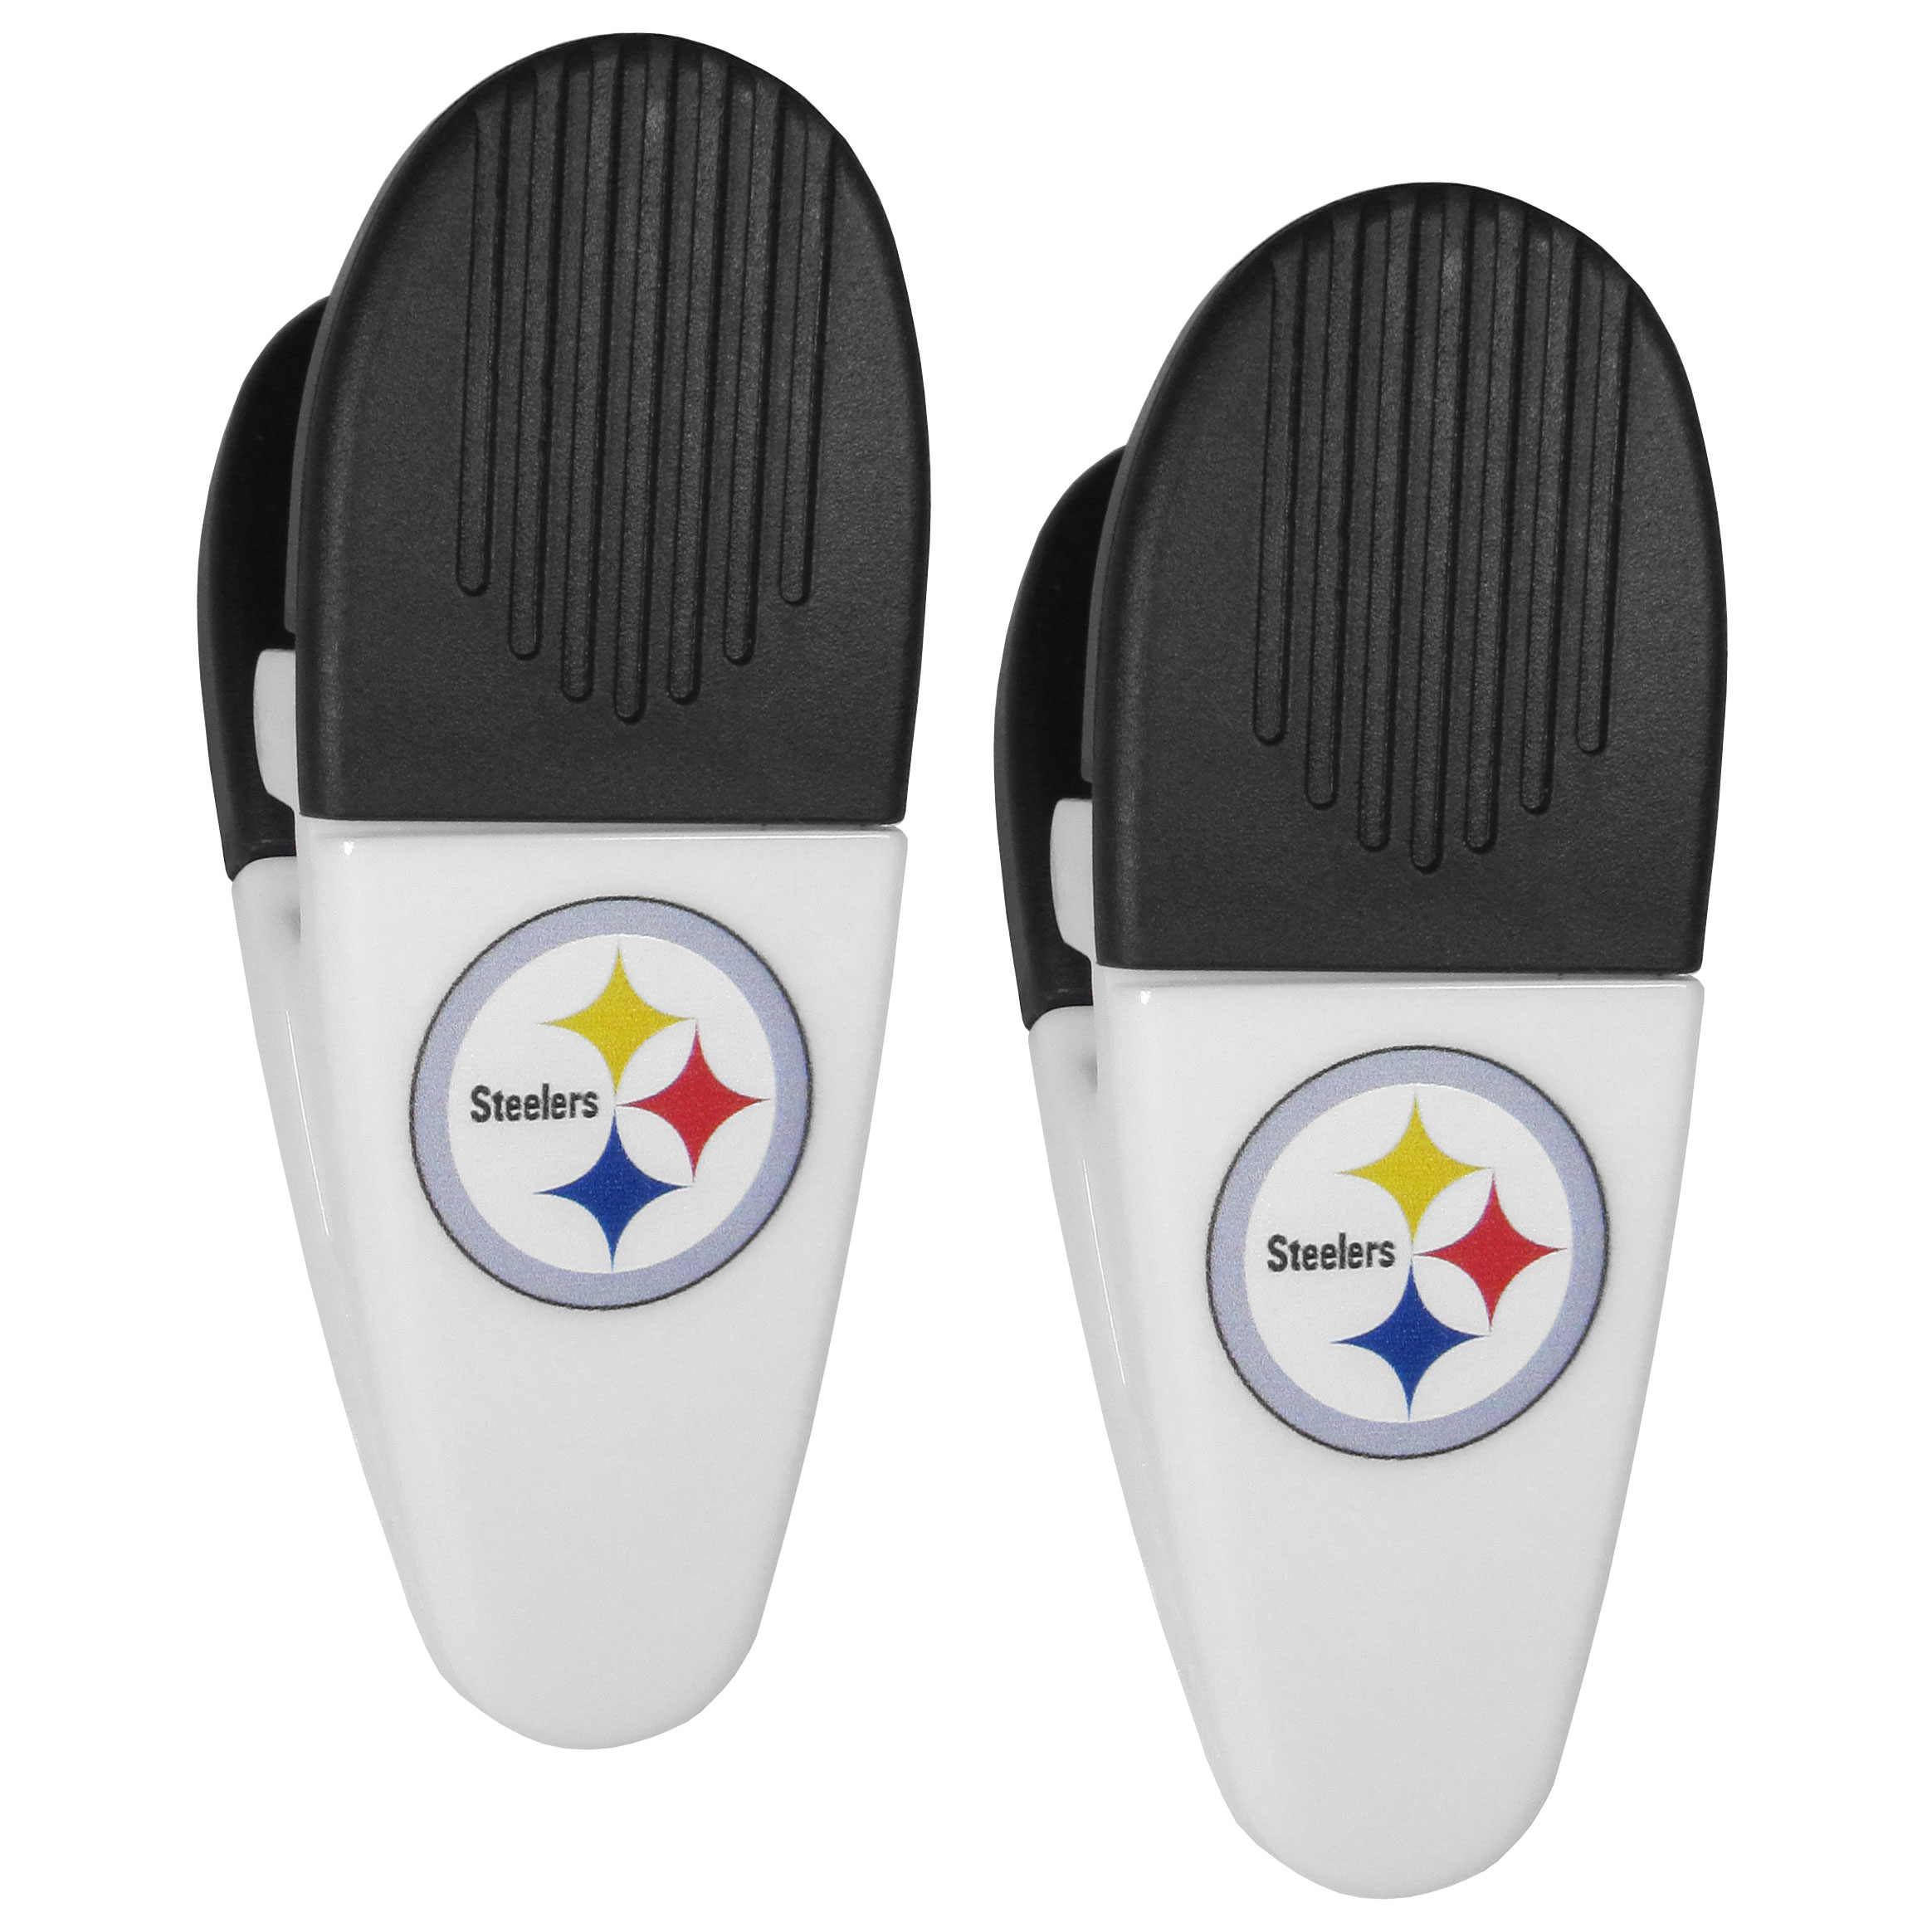 Pittsburgh Steelers Mini Chip Clip Magnets, 2 pk - Our Pittsburgh Steelers chip clip magnets feature a crisp team logo on the front of the clip. The clip is perfect for sealing chips for freshness and with the powerful magnet on the back it can be used to attach notes to the fridge or hanging your child's artwork. Set of 2 magnet clips, each clip is 3.5 inches tall and 1.25 inch wide.